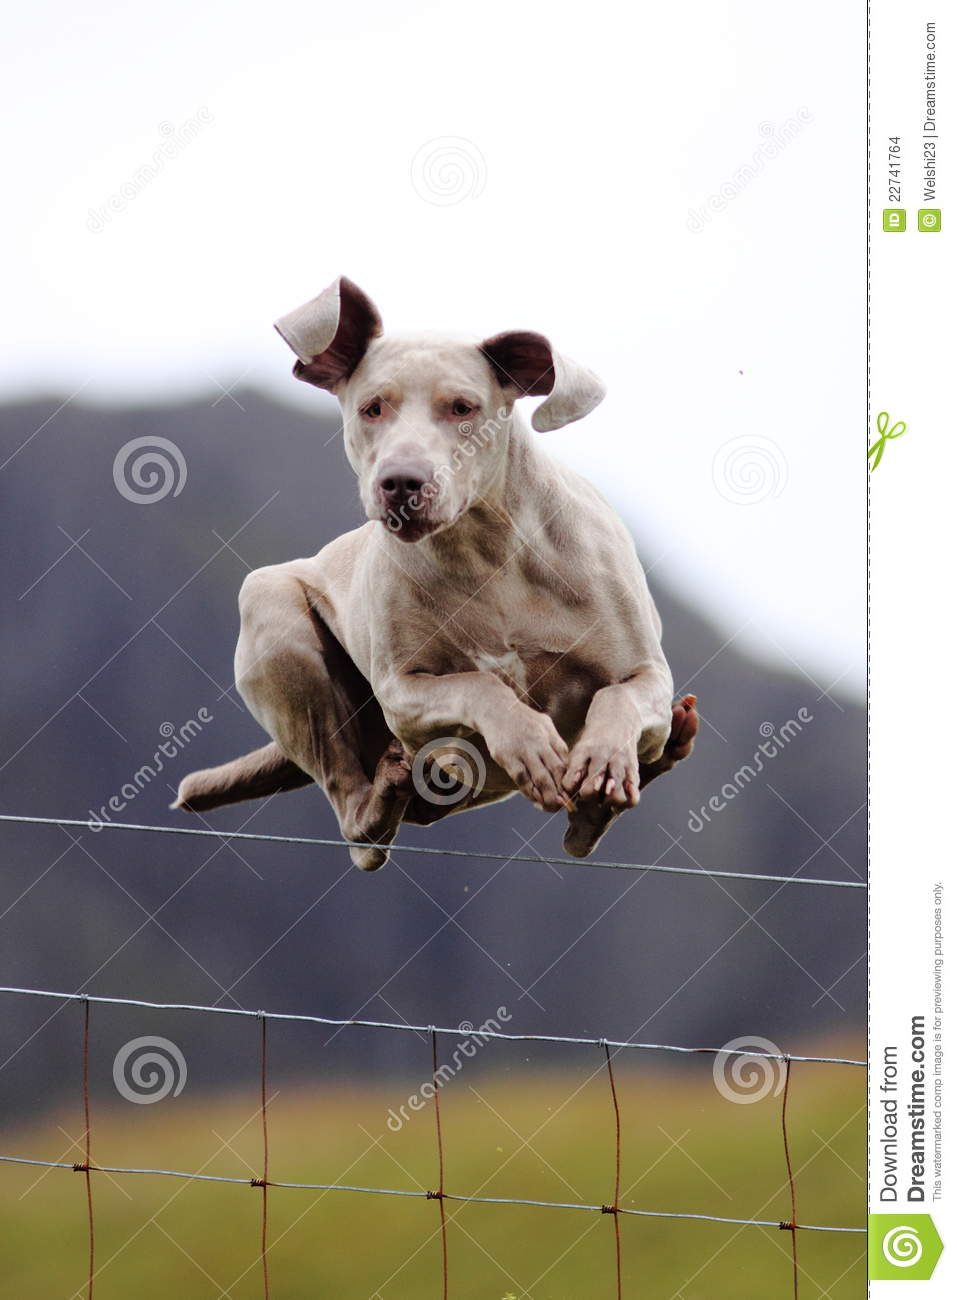 Dog Jumping Over Fence Stock Photo Image Of Jumping